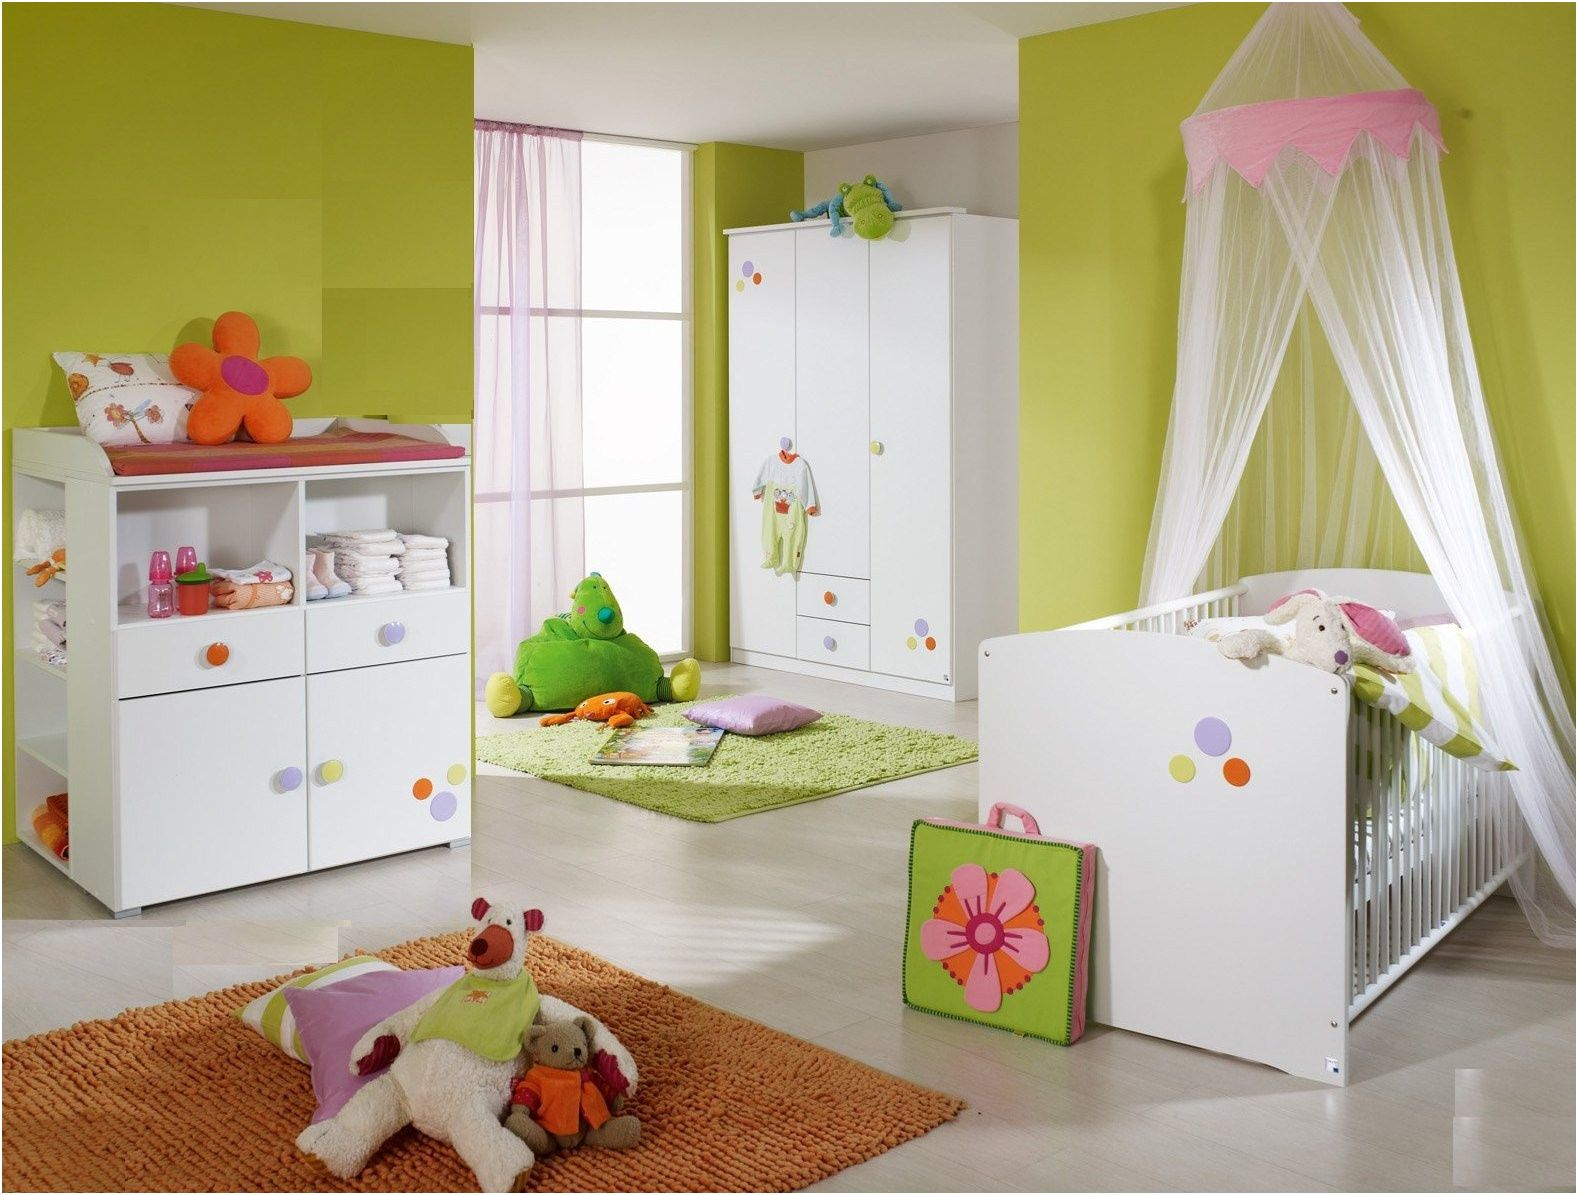 19 Plaisant Chambre Bebe Okay Photos Toddler Bed Furniture Bed